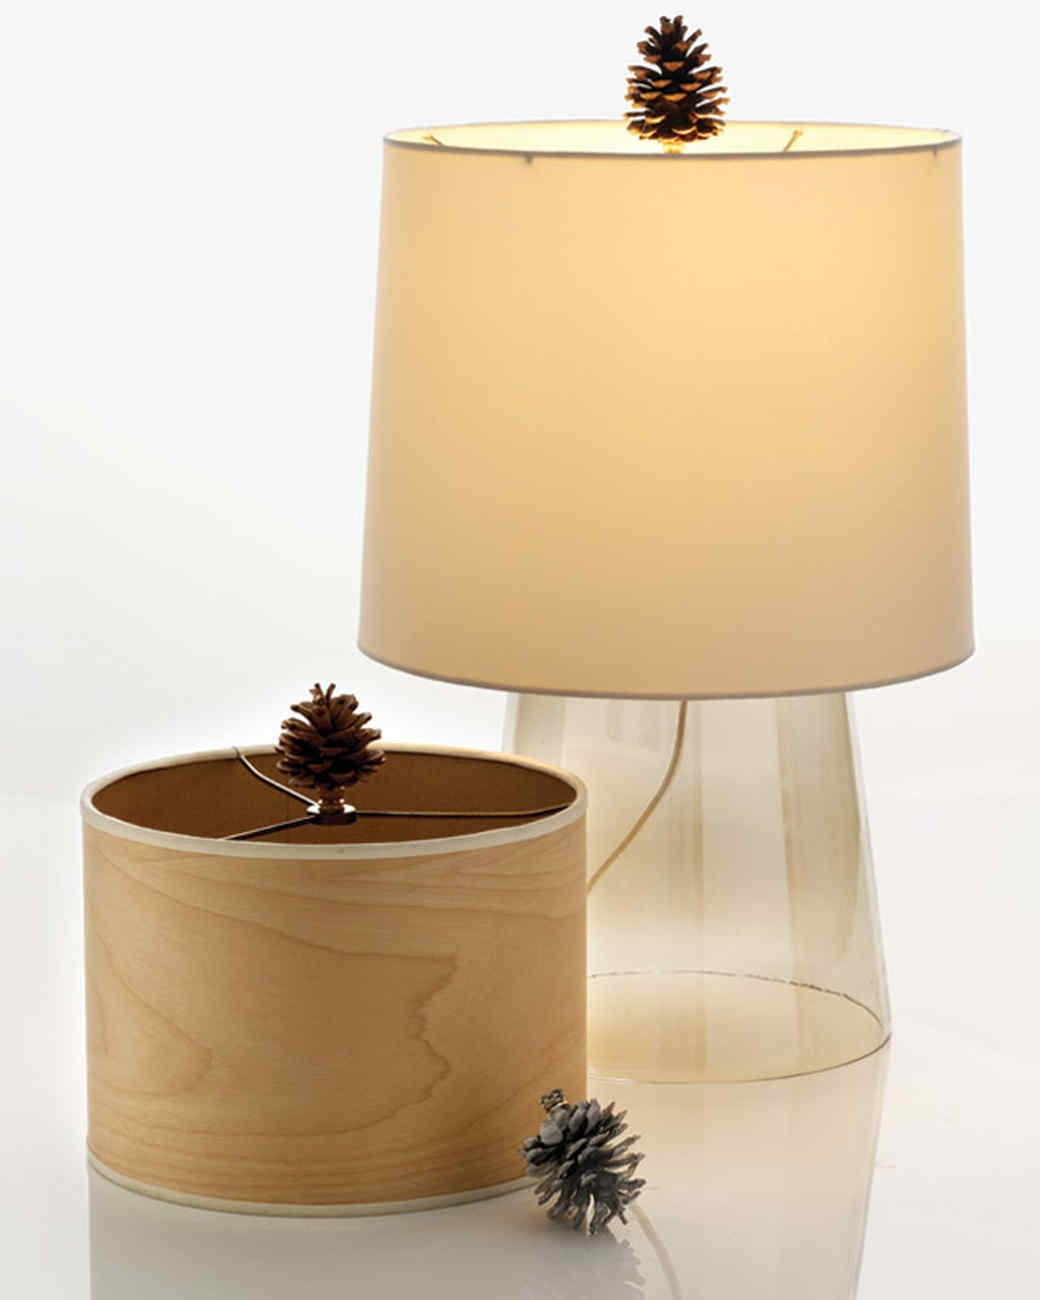 15 Of Our Best Fall Harvest Decorating Ideas For Your Home With Images Lamp Finial Lamp Decor